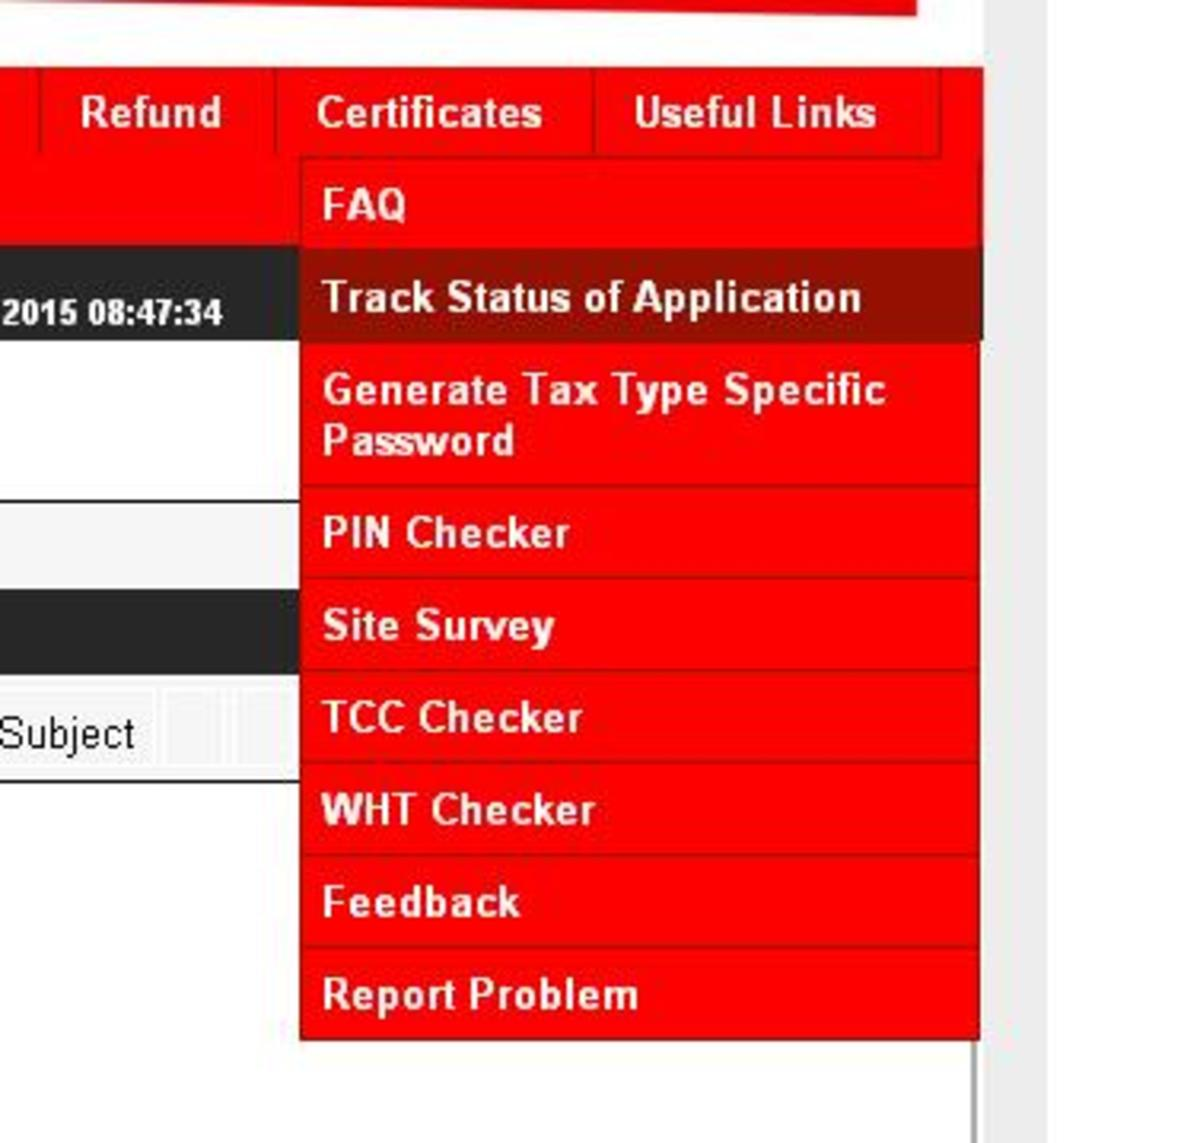 Tracking Status of TCC Application